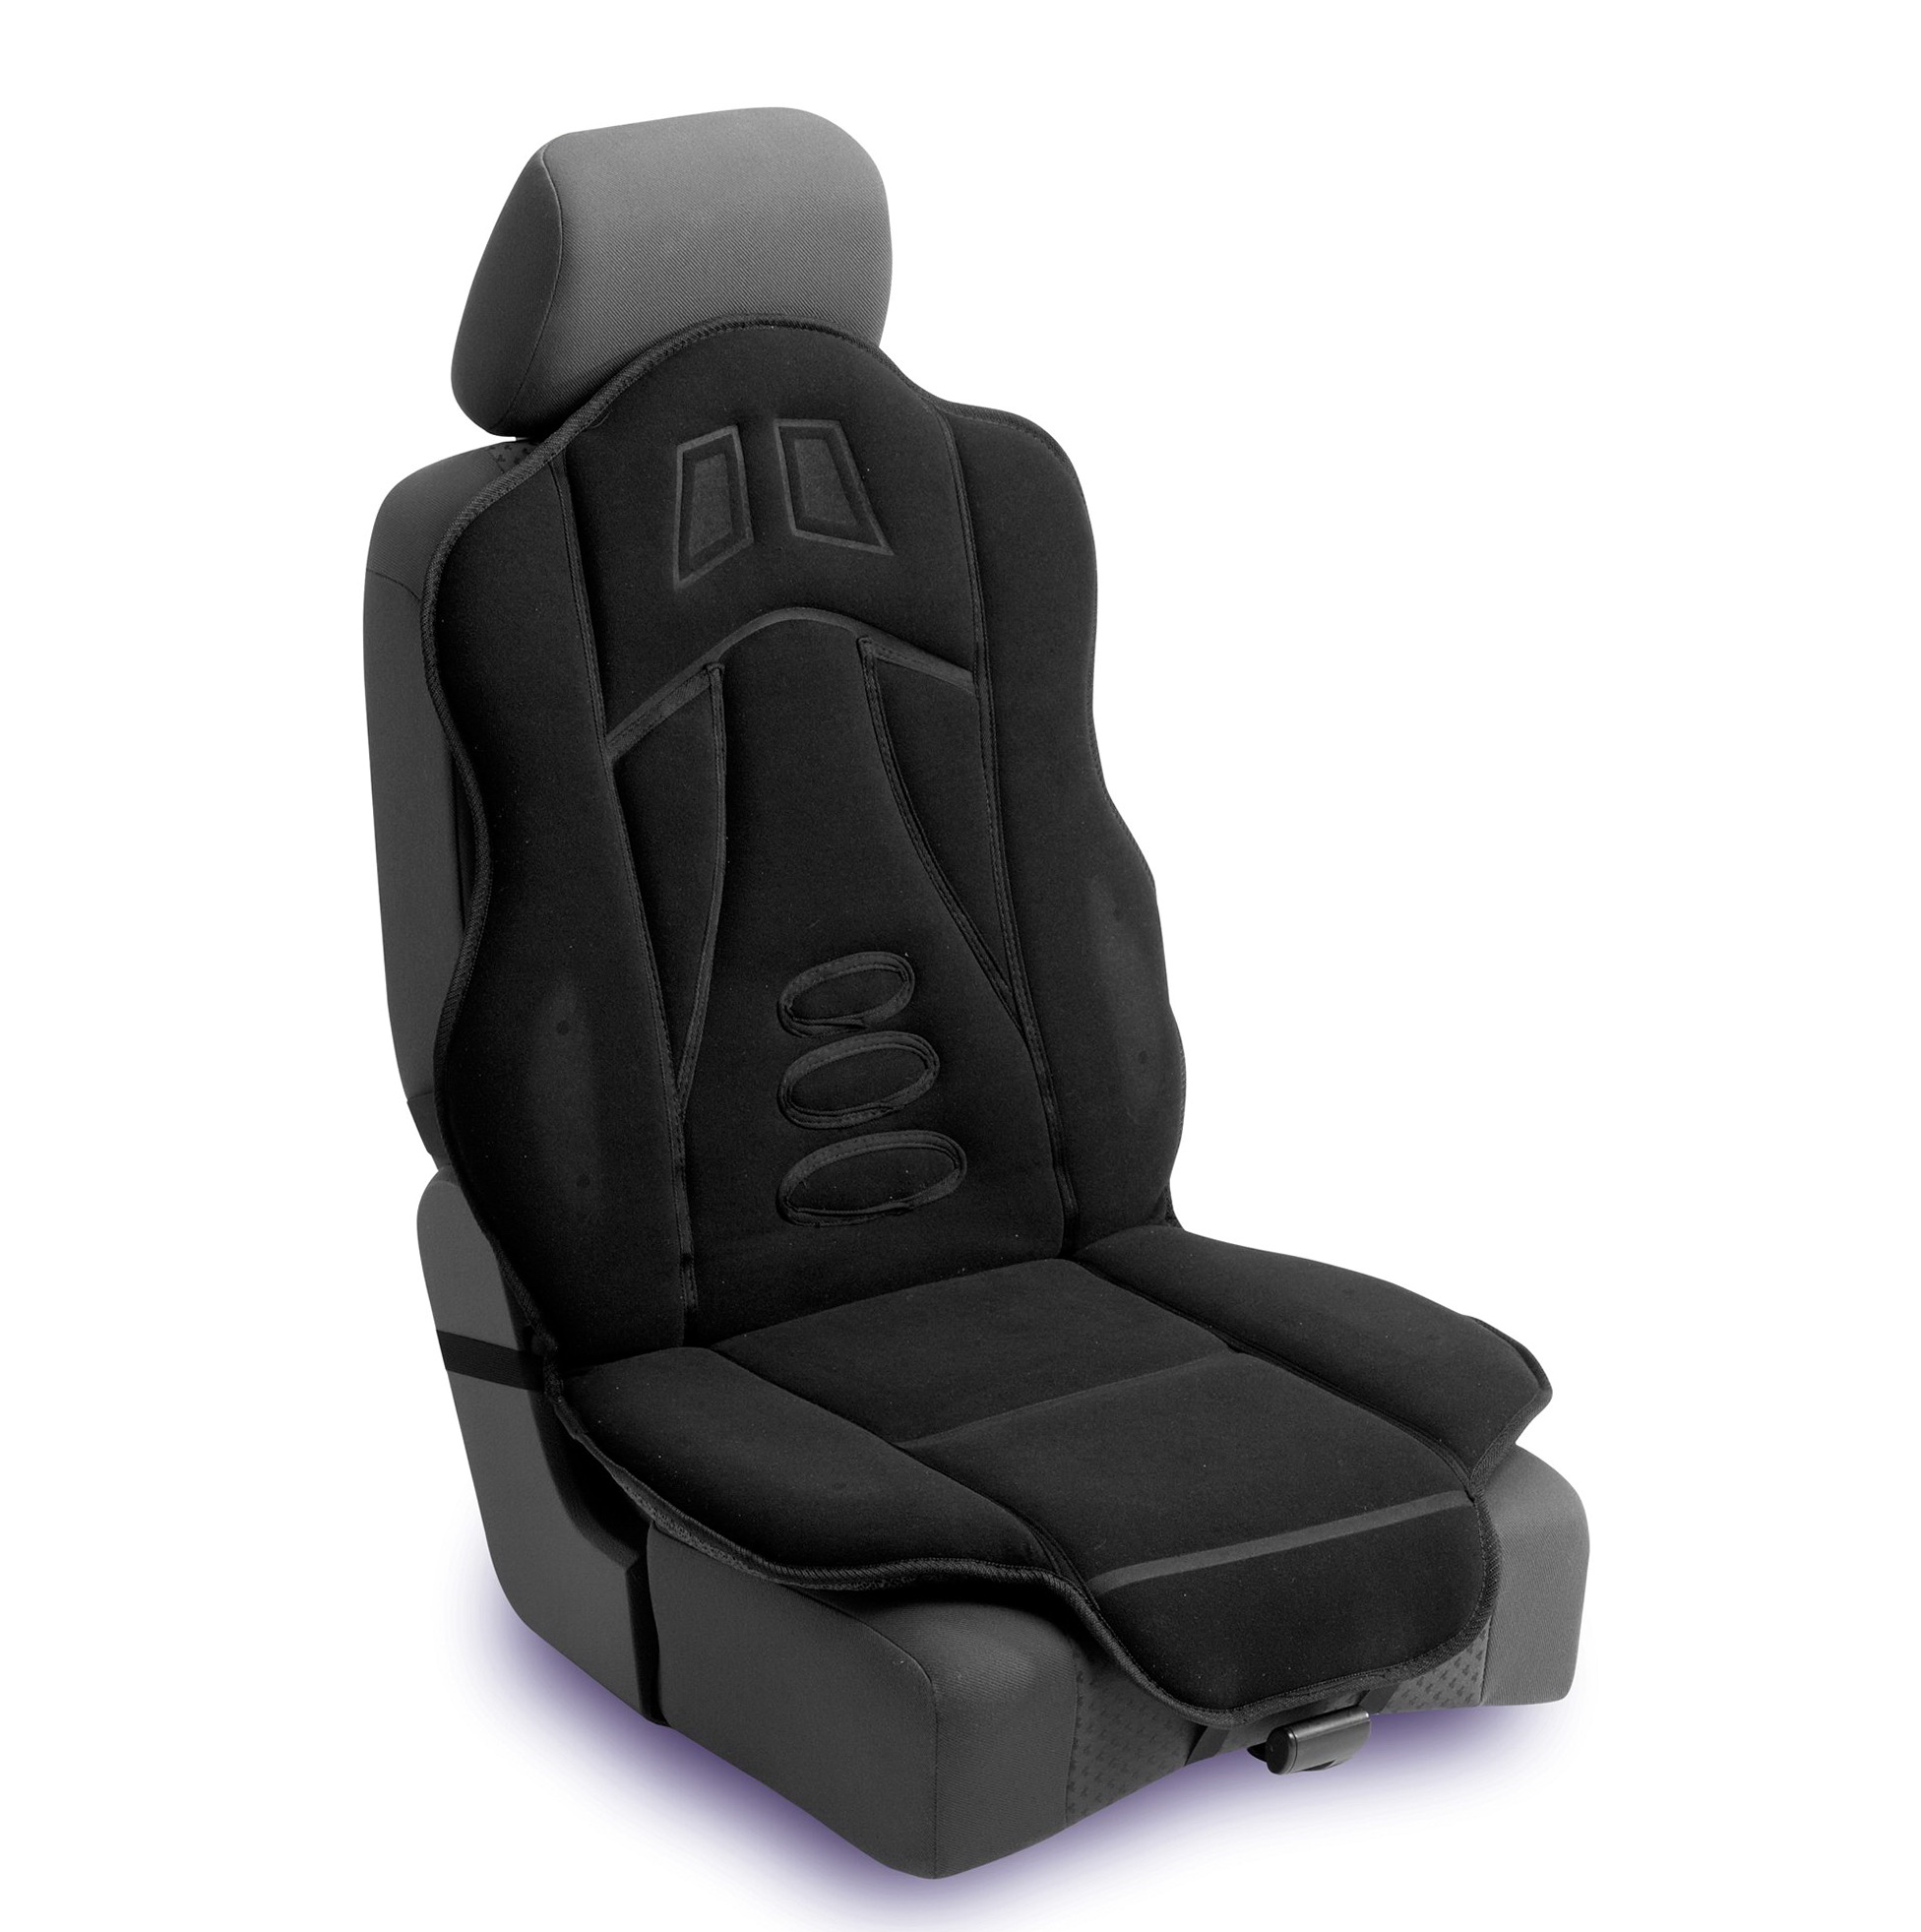 lumbar cushion for car seat home design ideas. Black Bedroom Furniture Sets. Home Design Ideas